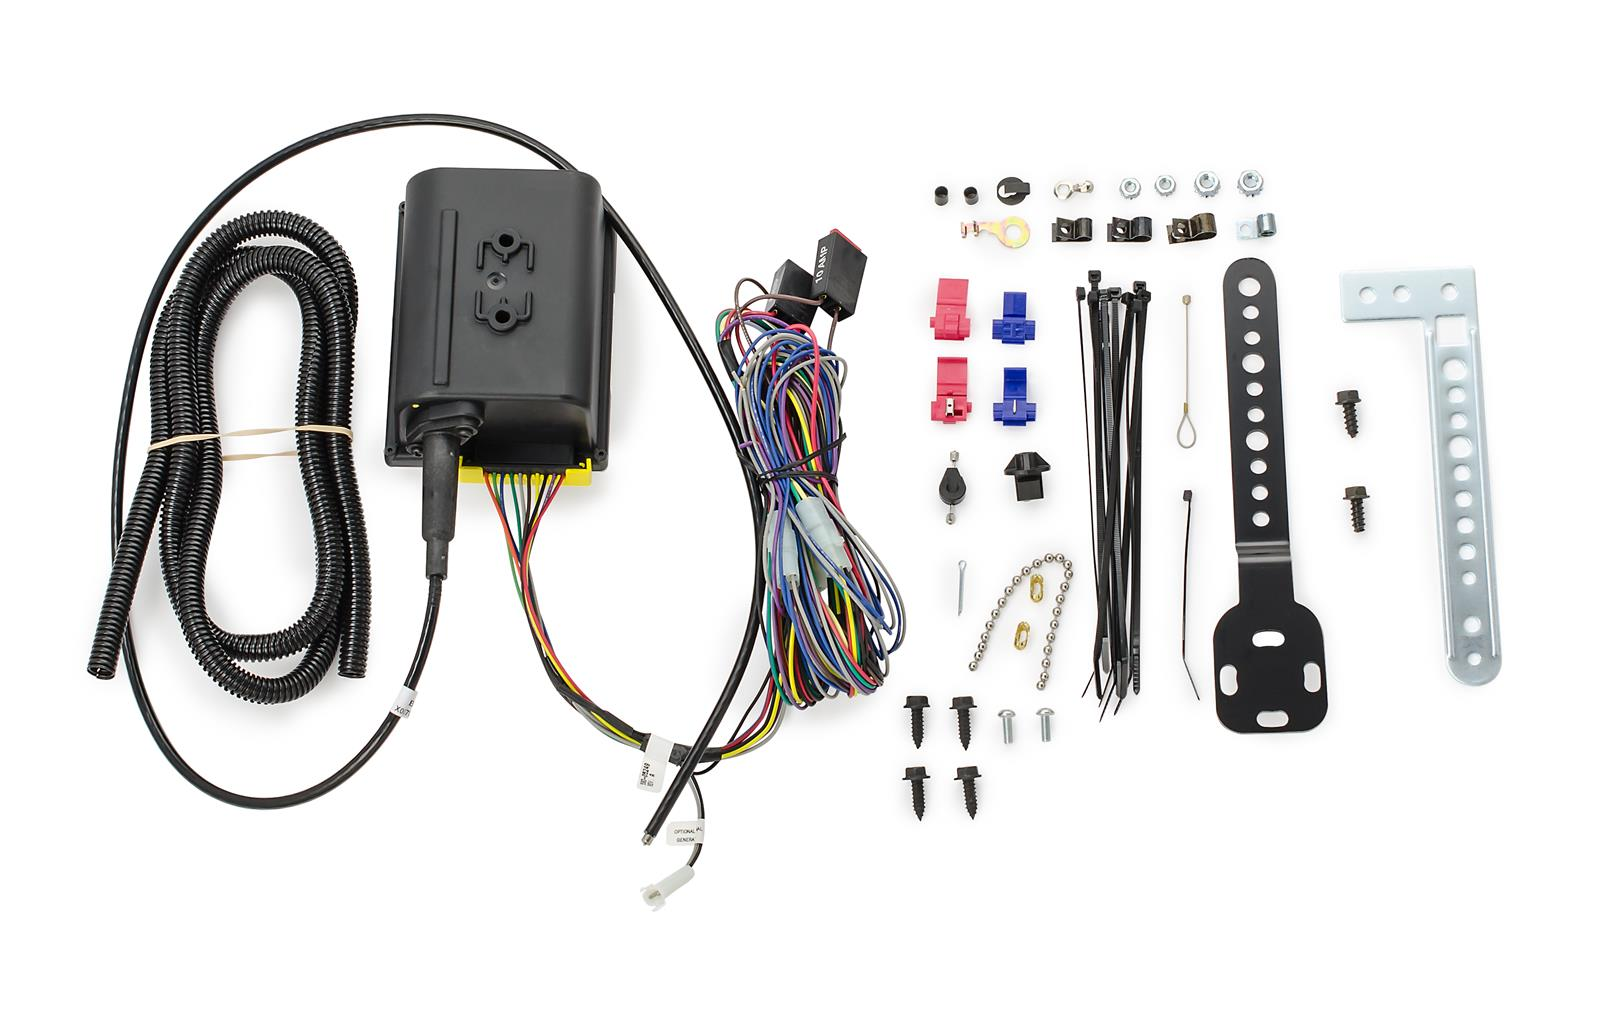 hight resolution of dakota digital cruise control kits for electronic speedometers crs 3000 2 free shipping on orders over 99 at summit racing